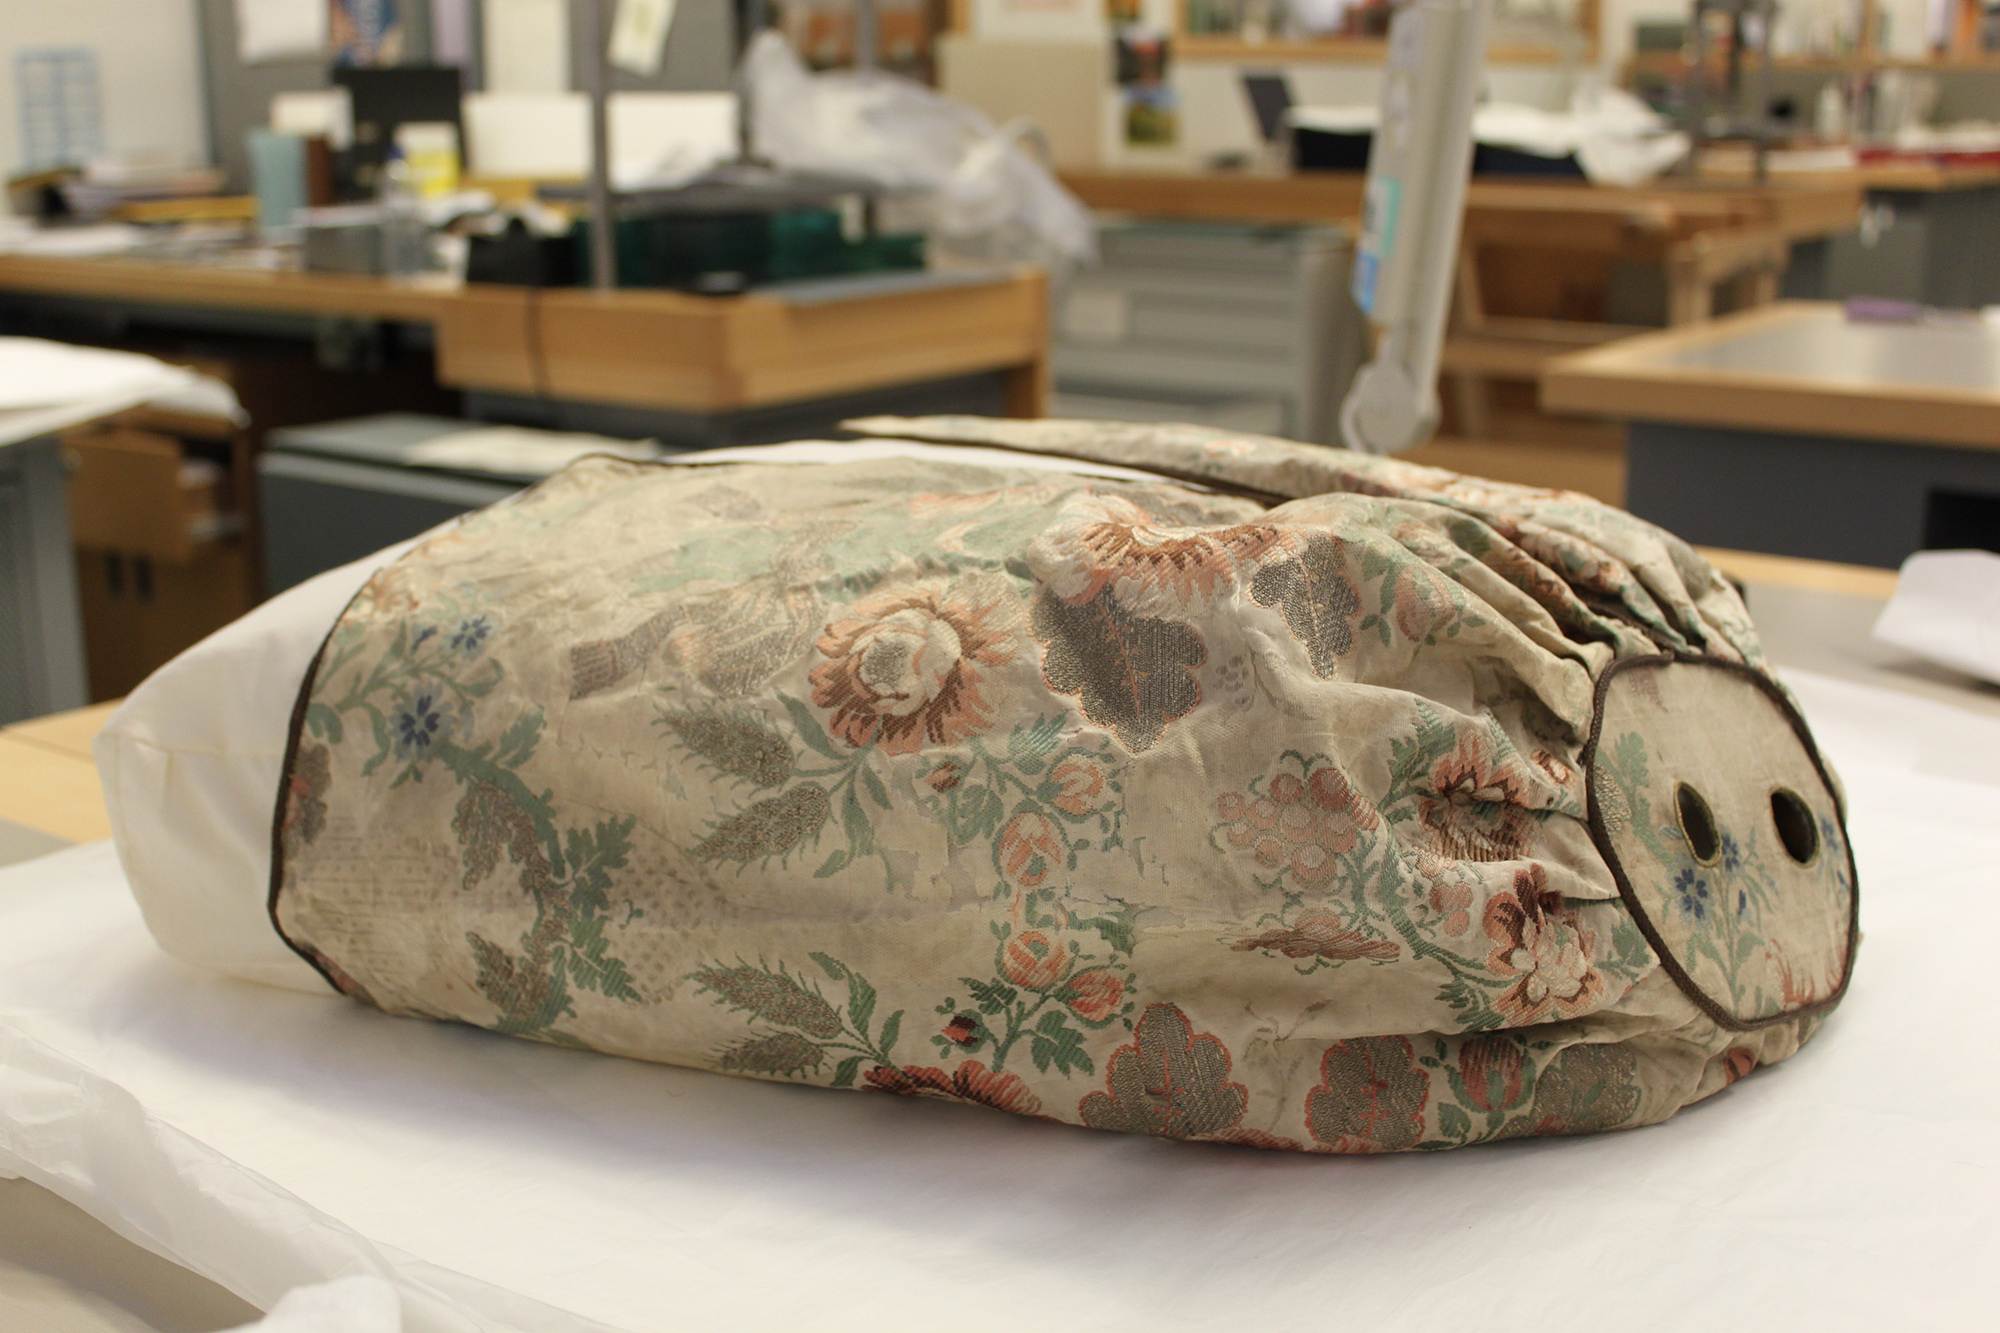 After conservation, mantle supported on bespoke cushion, Or 13027/2, Hebrew Manuscripts Digitisation Project, British Library